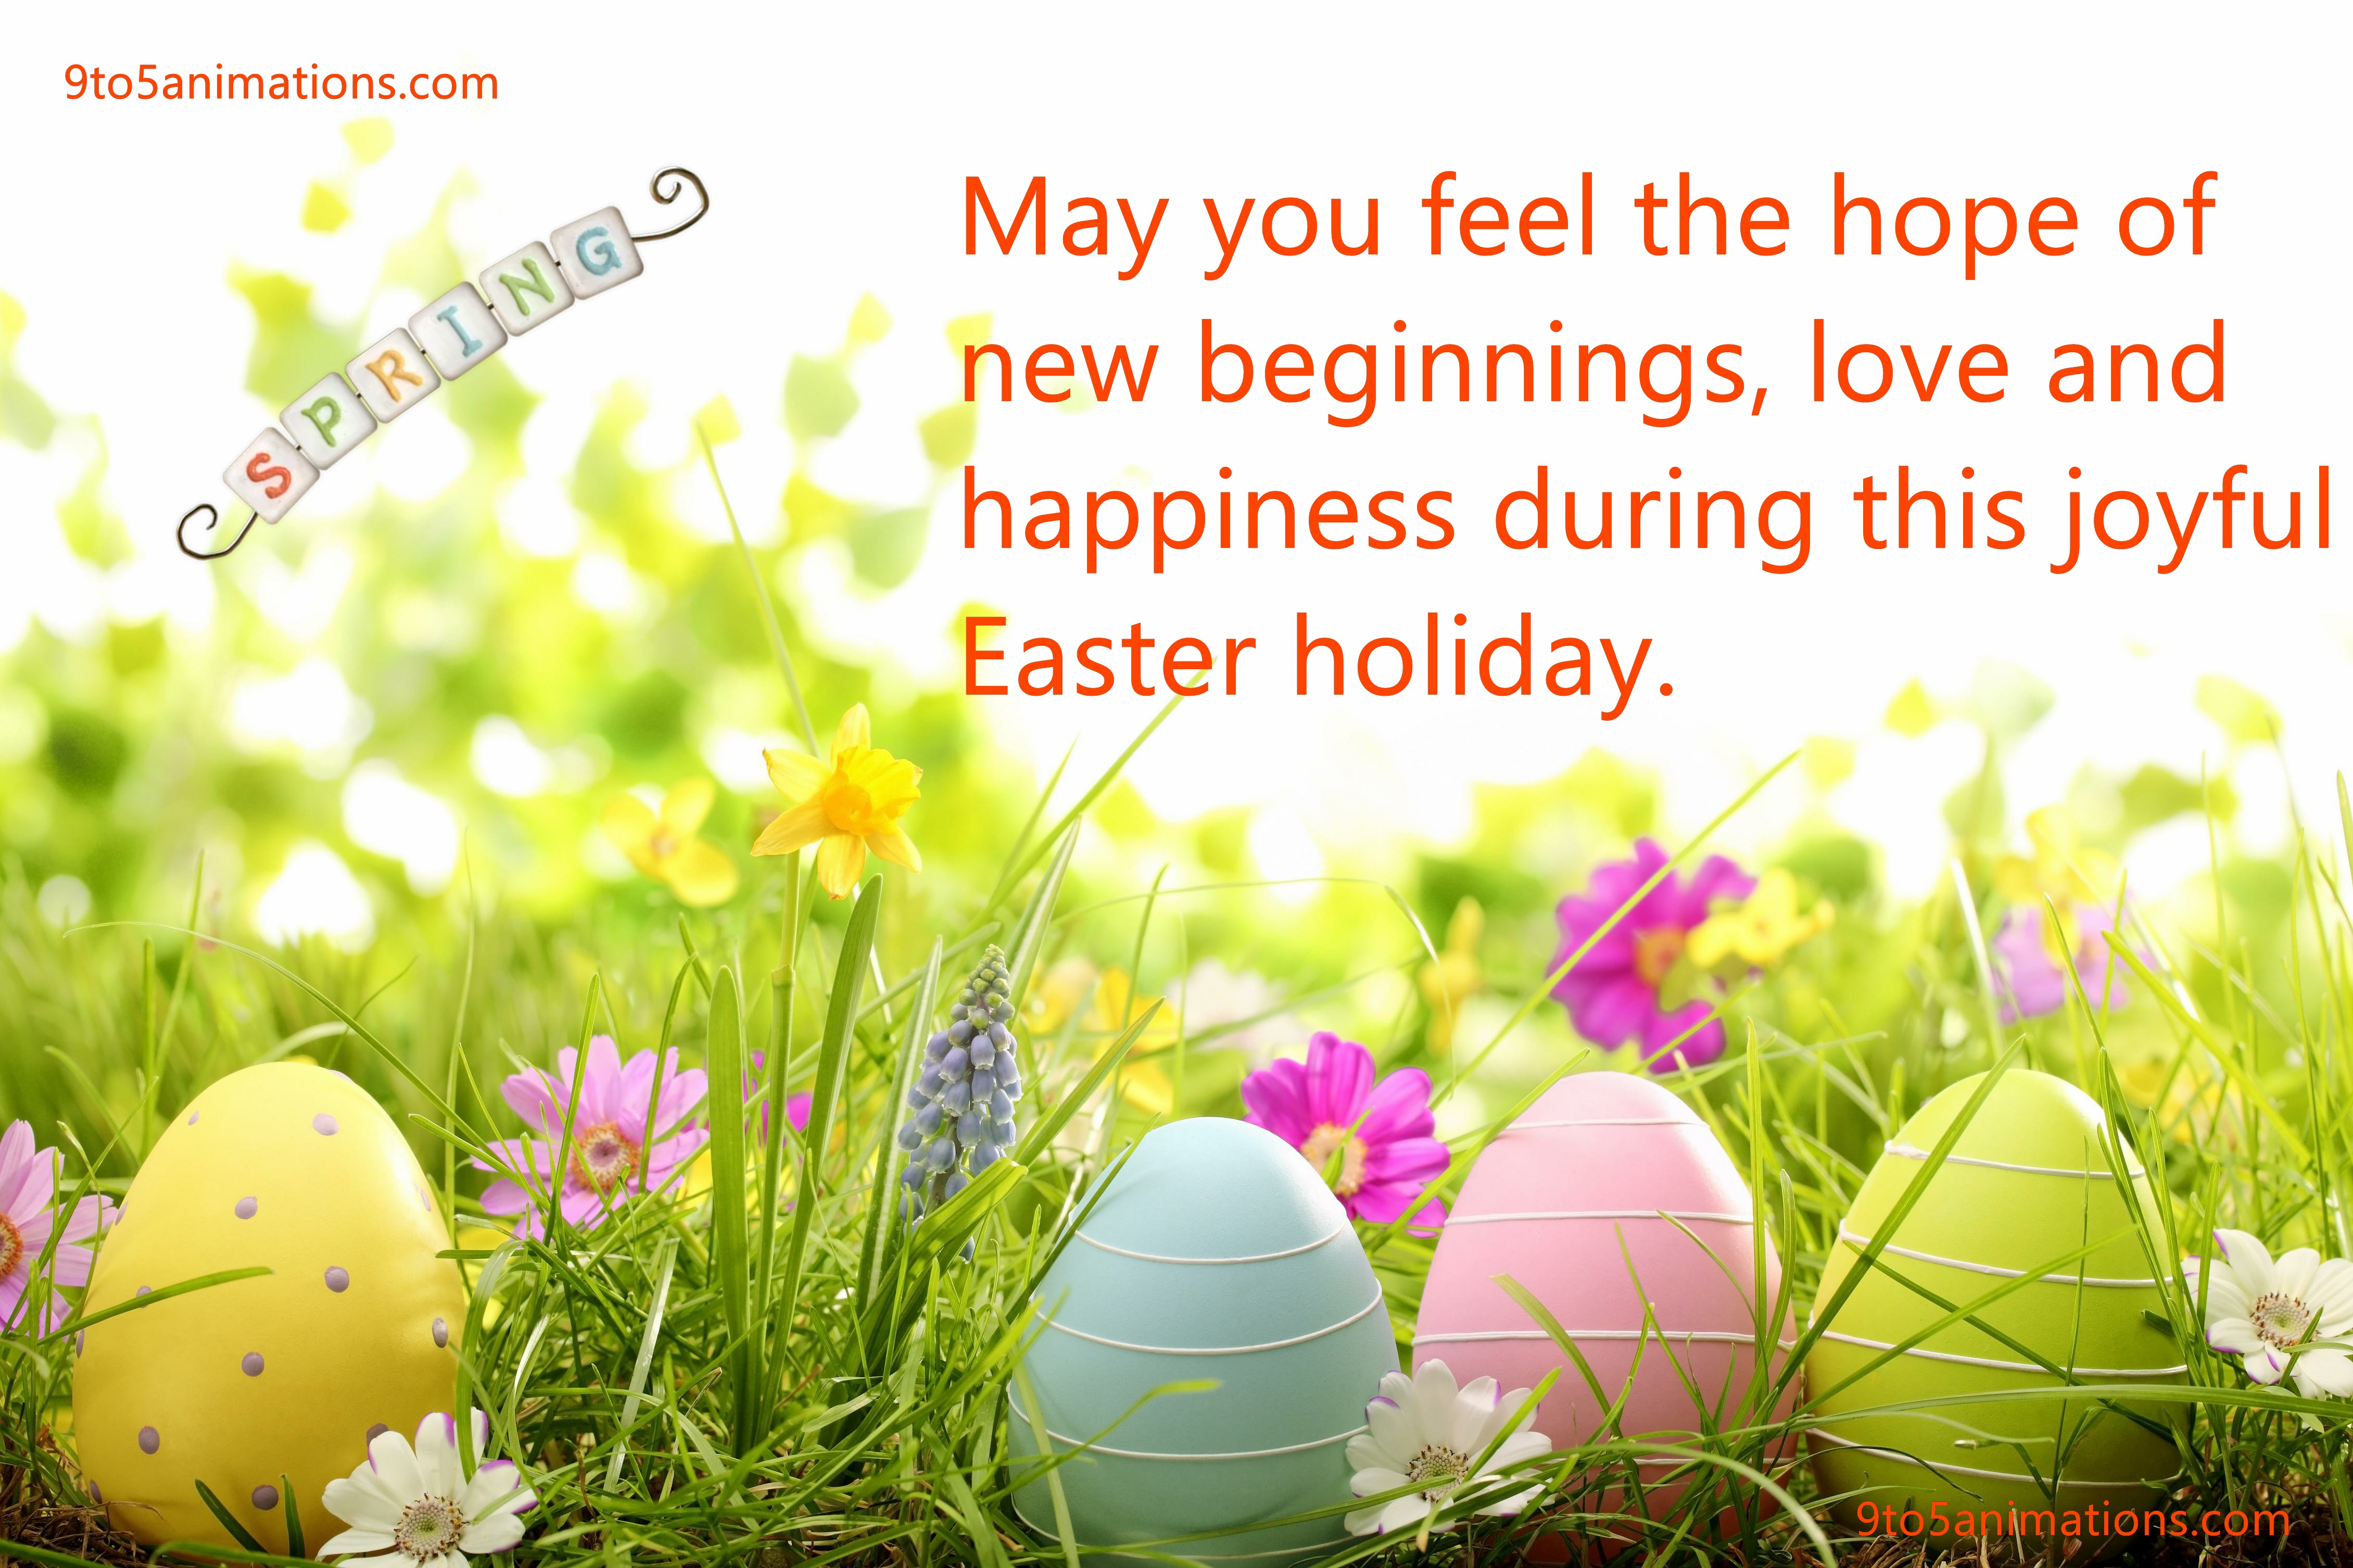 2018 Happy Easter Wishes Images 9To5AnimationsCom 4520x3013